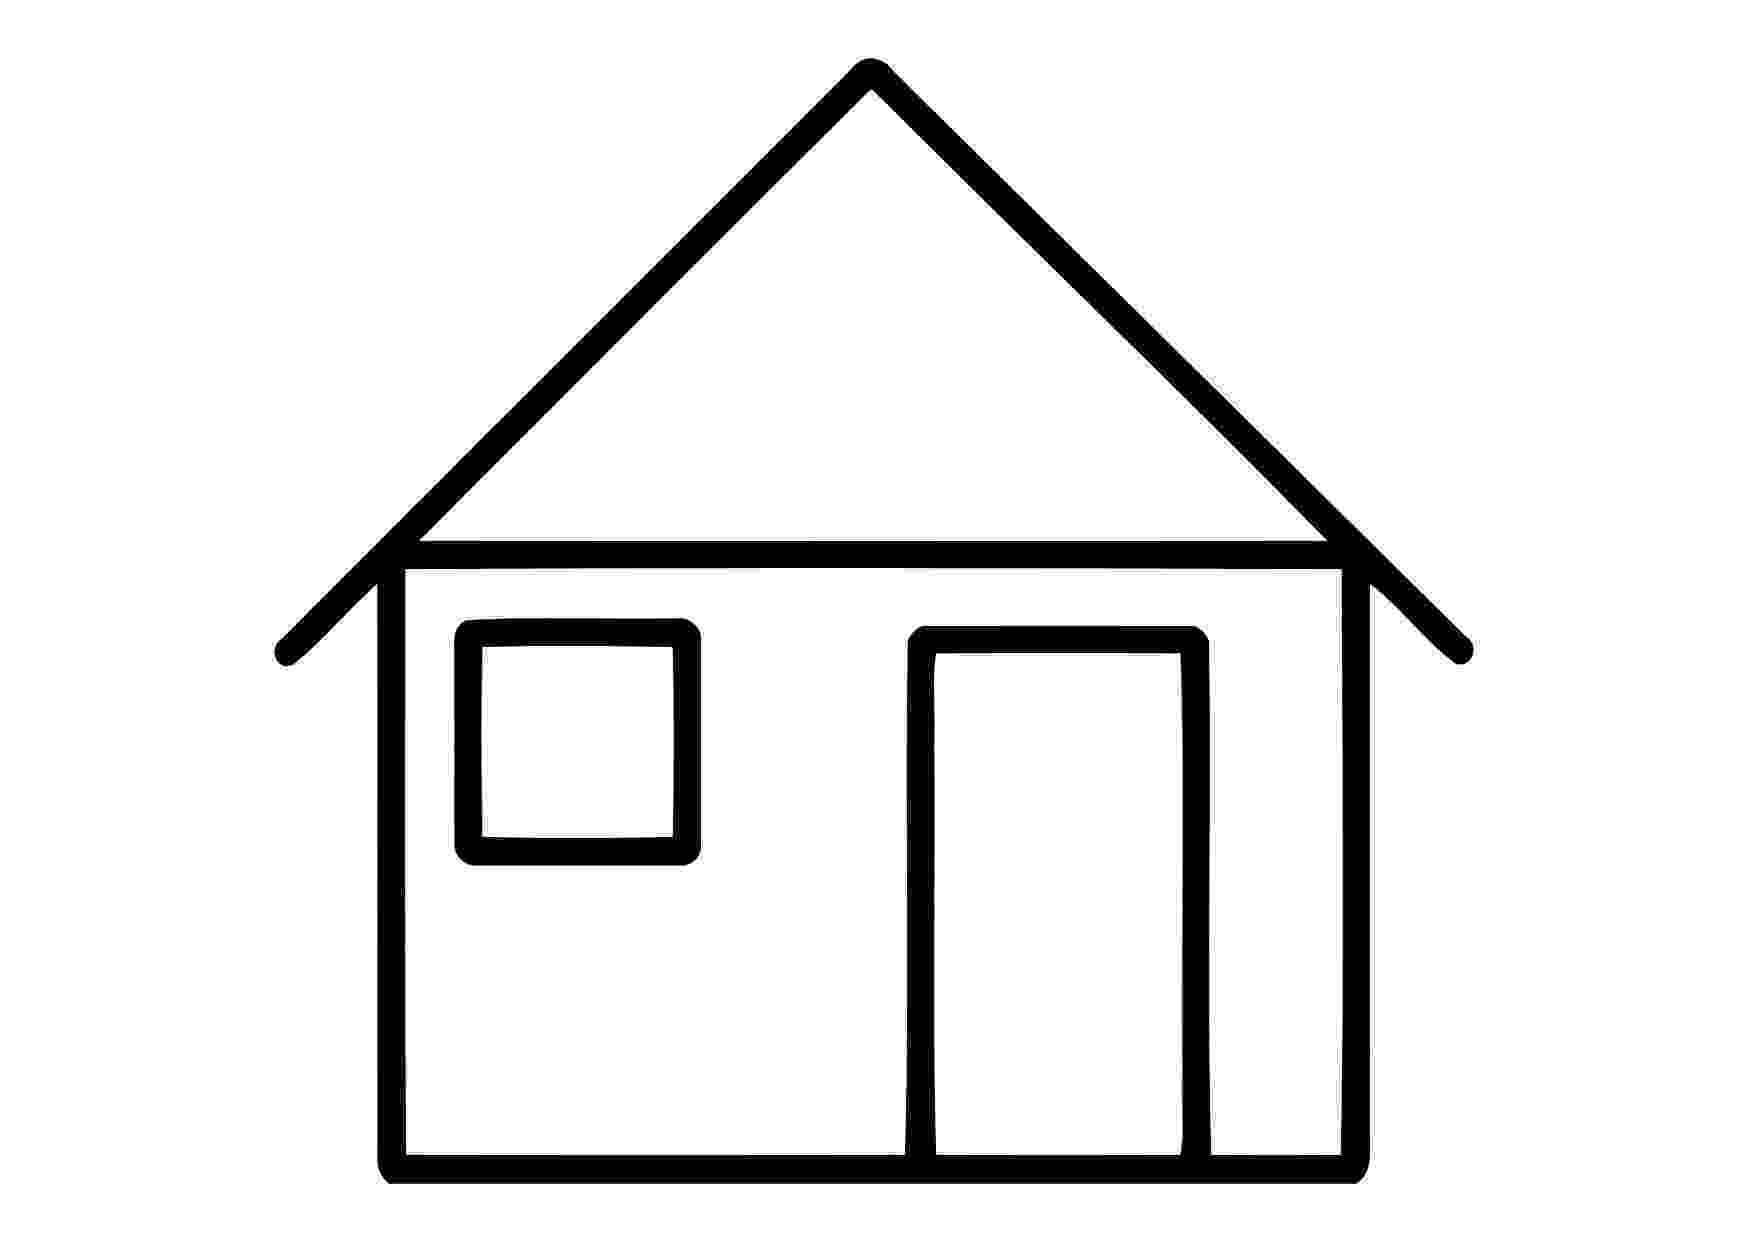 coloring pages house free printable house coloring pages for kids pages house coloring